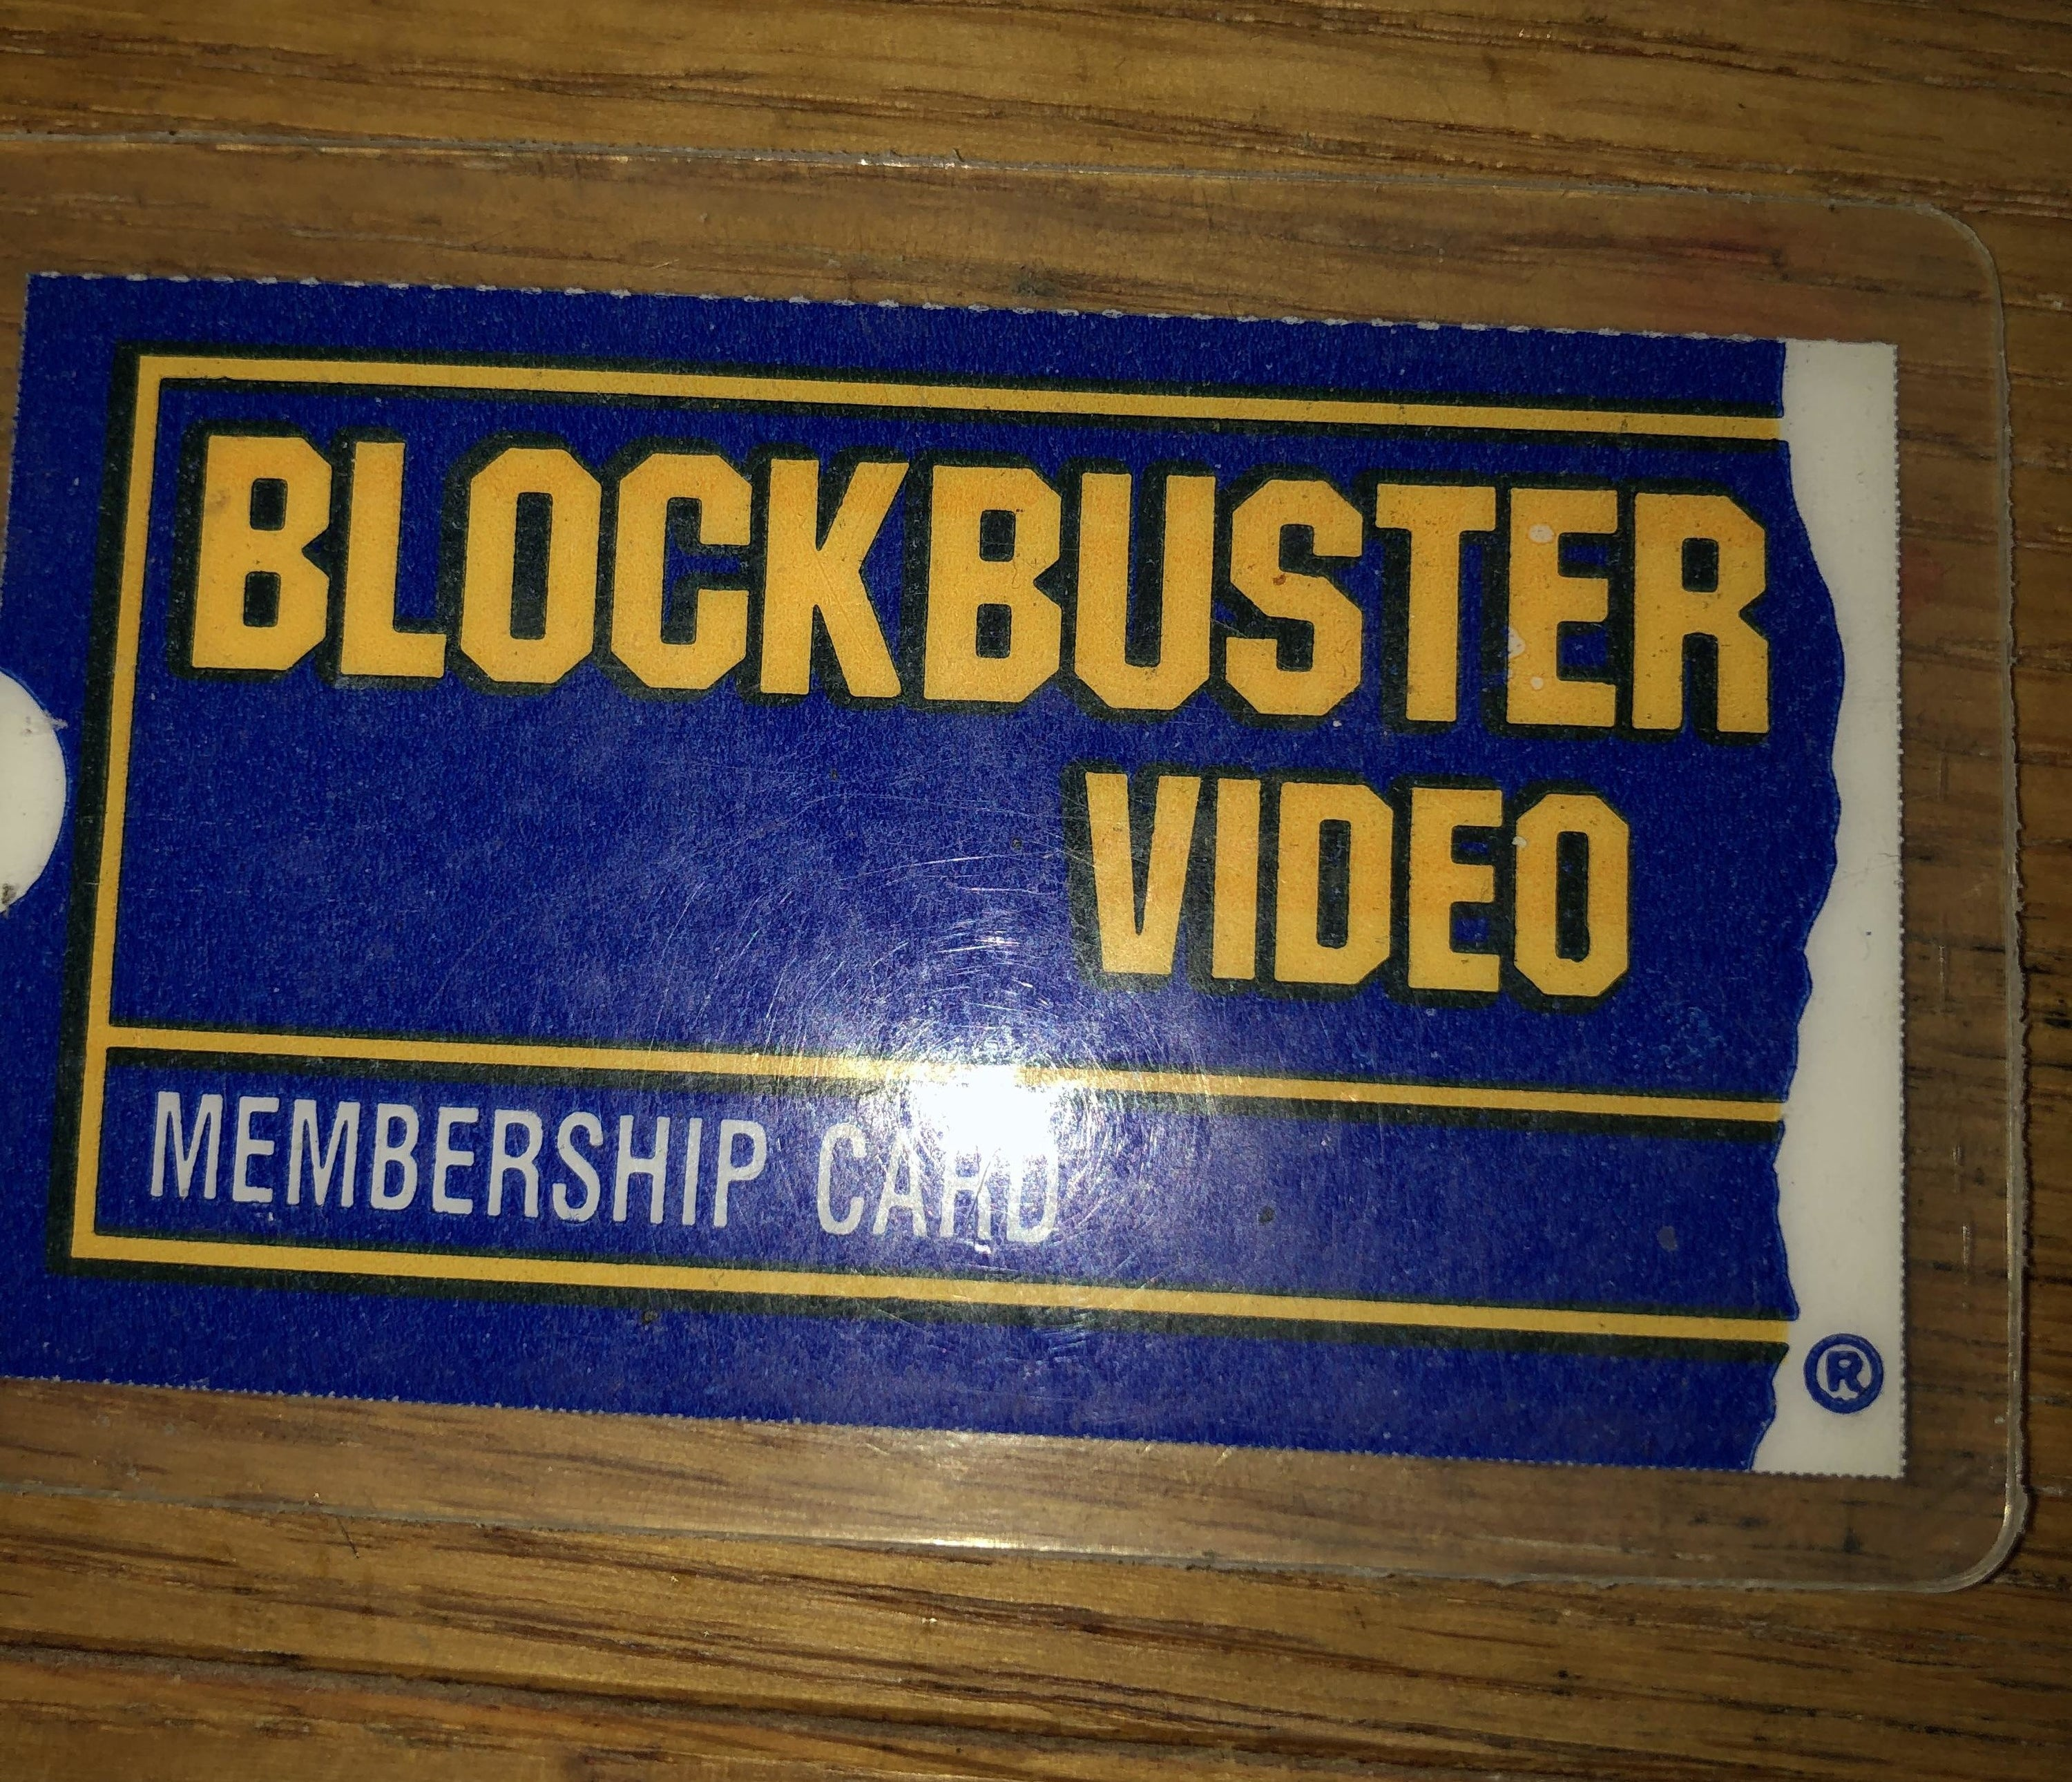 A Blockbuster Video card on a wooden table